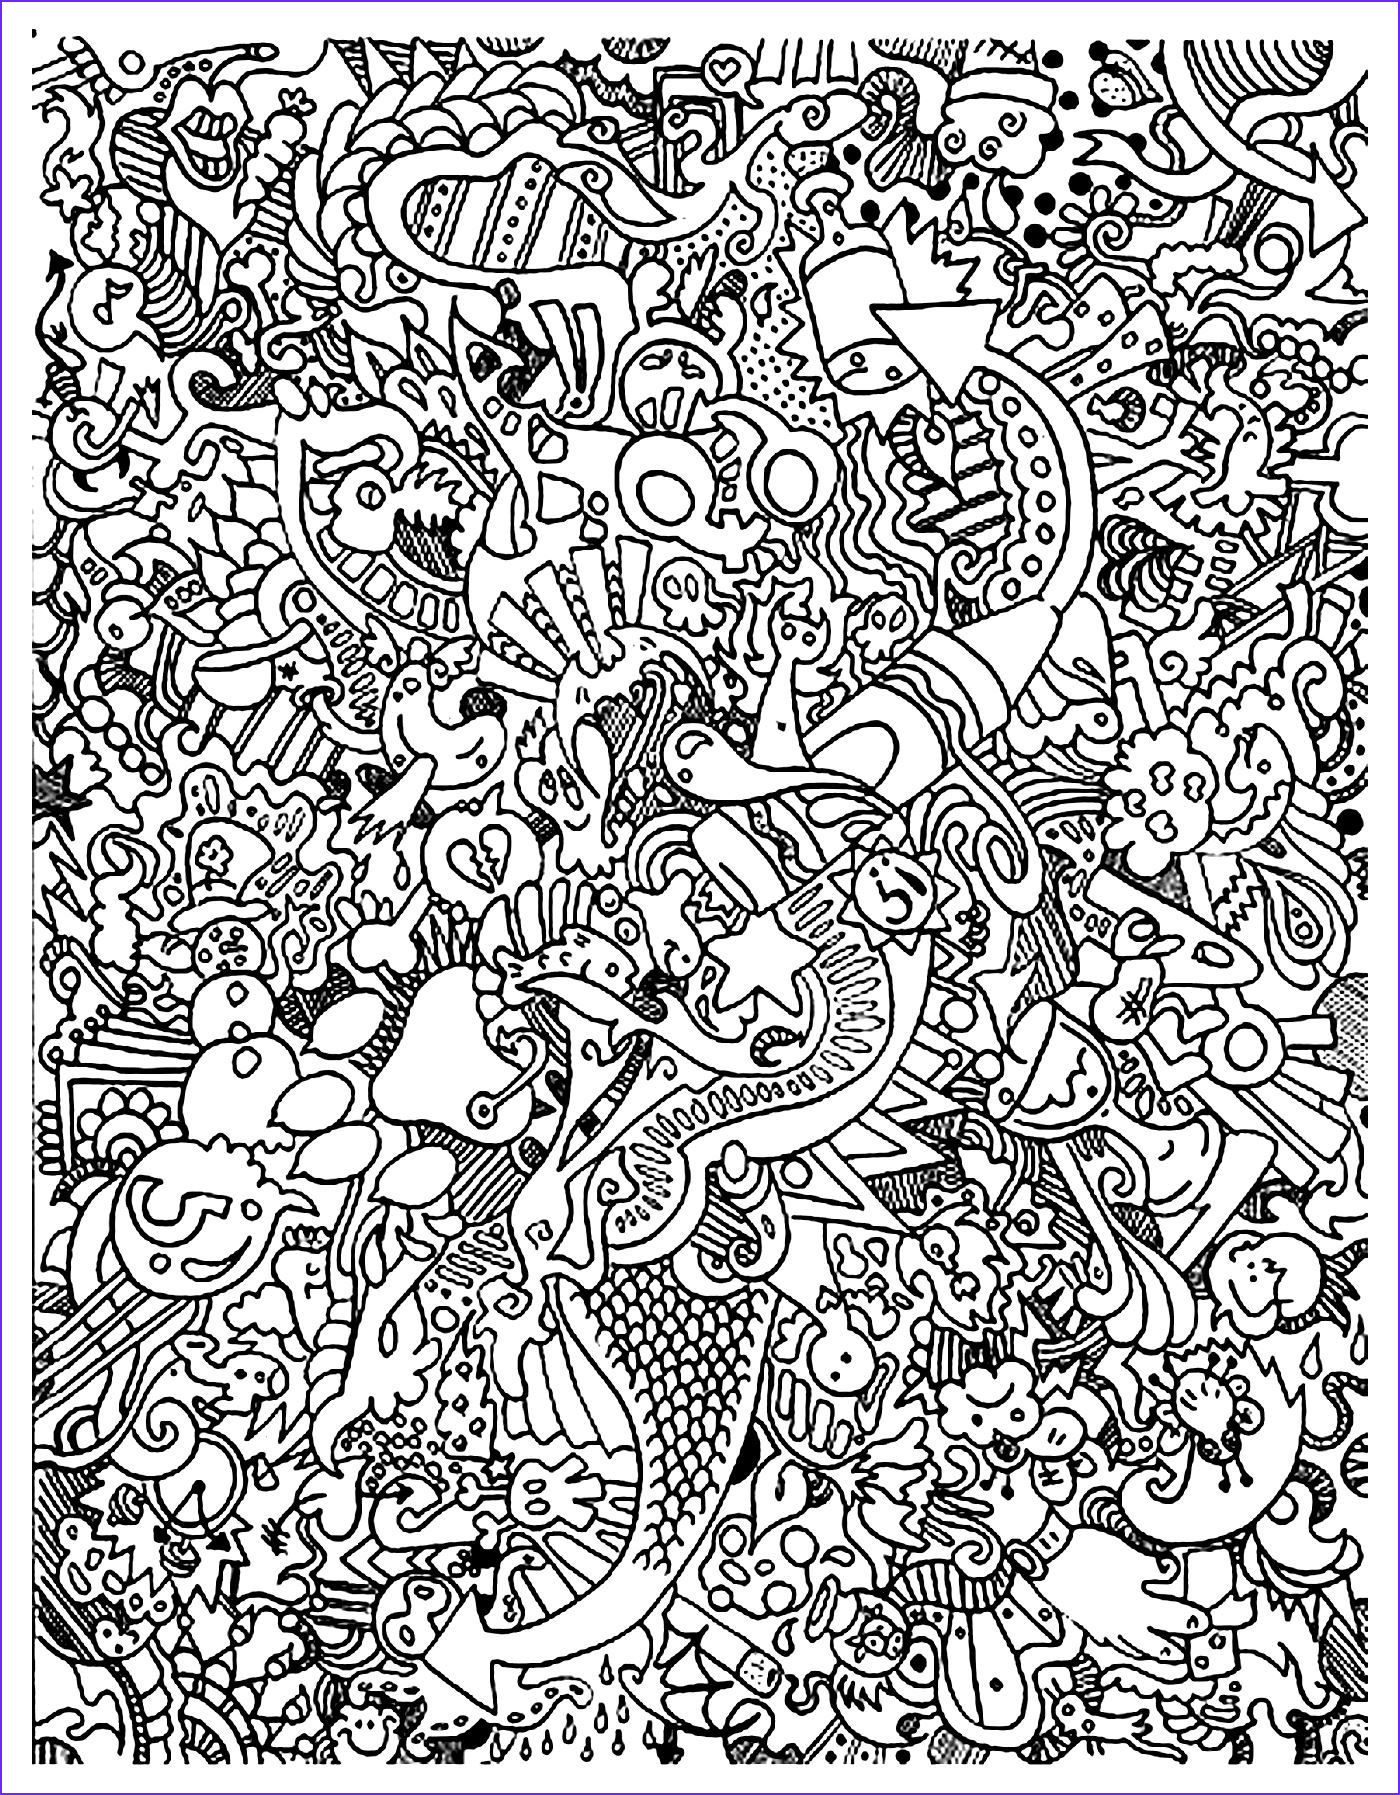 Doodle Coloring Pages Inspirational Gallery Free Coloring Page Coloring Doodle Art Doodling 18 Very